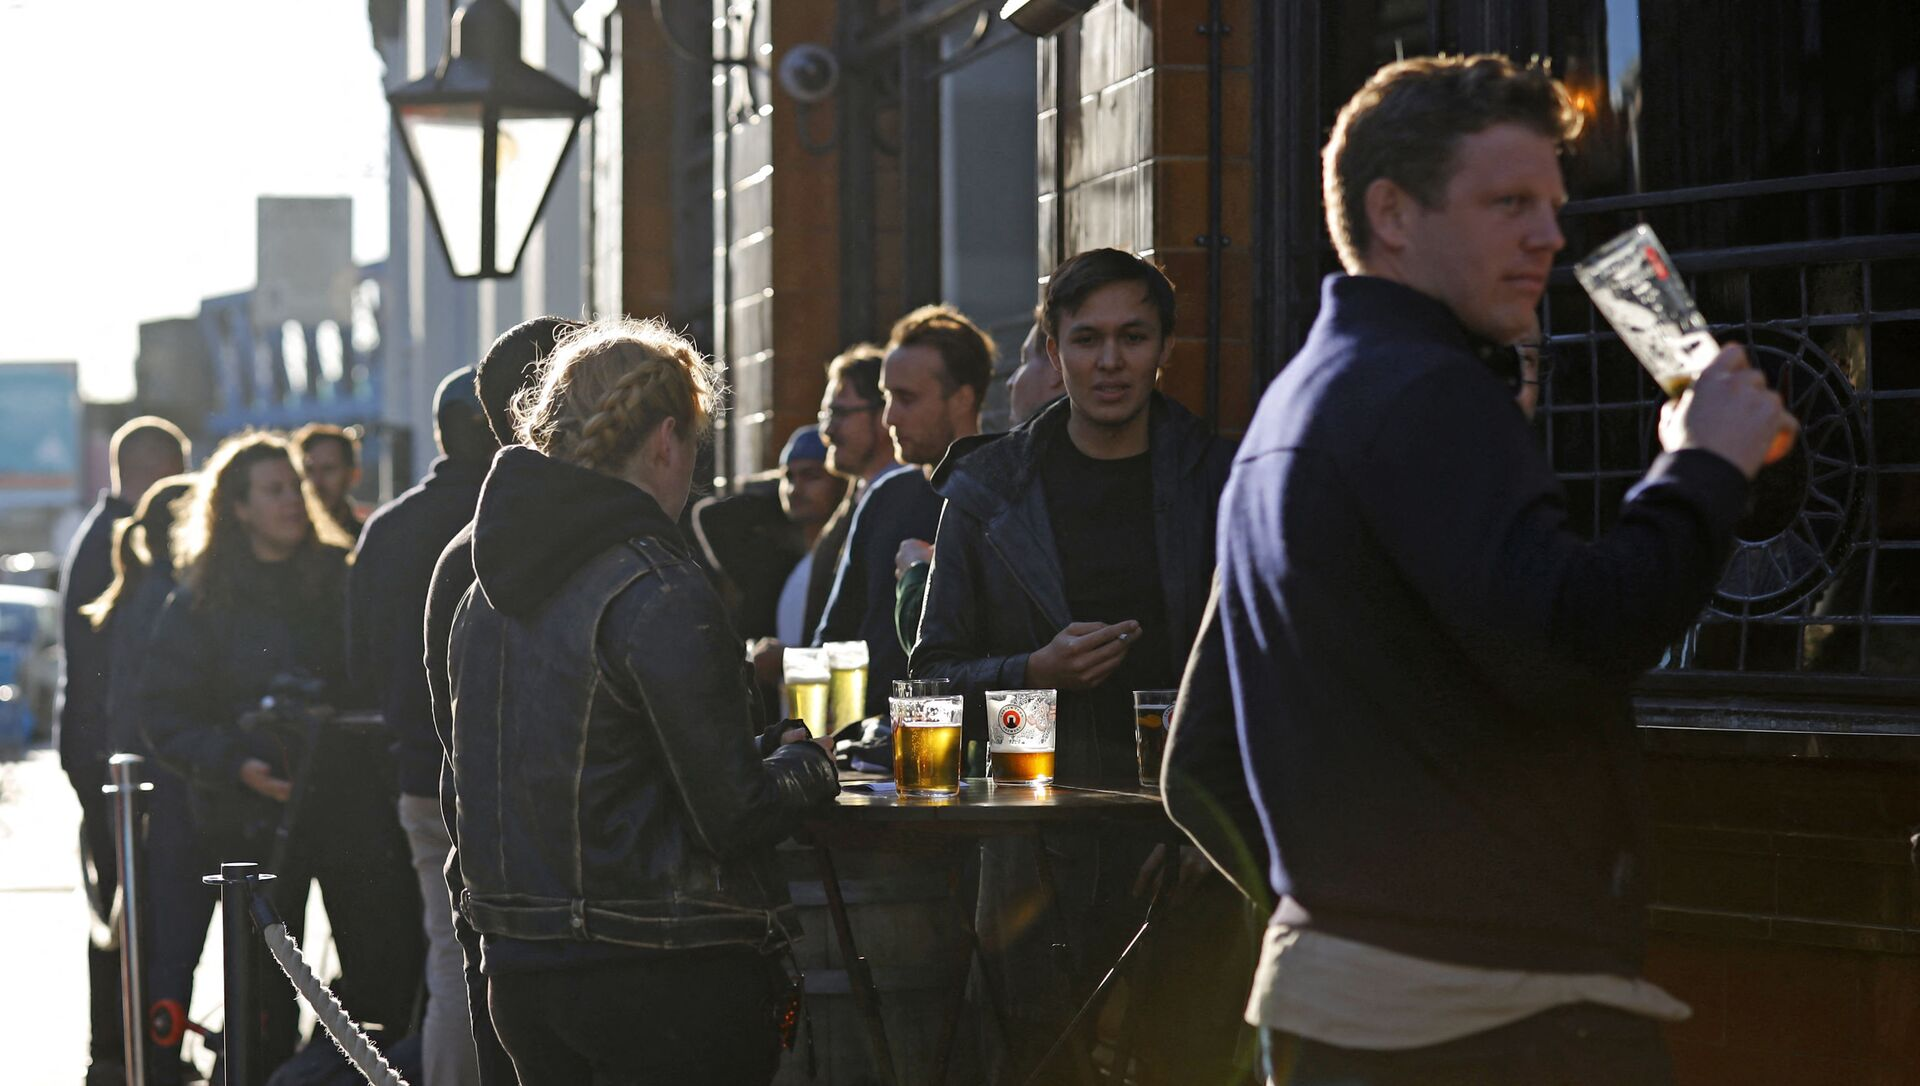 After-work drinkers enjoy a pint outside a pub in Borough Market, in London on September 25, 2020, as new earlier closing times for pubs and bars in England and Wales are introduced to combat the spread of the coronavirus. - Sputnik Italia, 1920, 22.04.2021